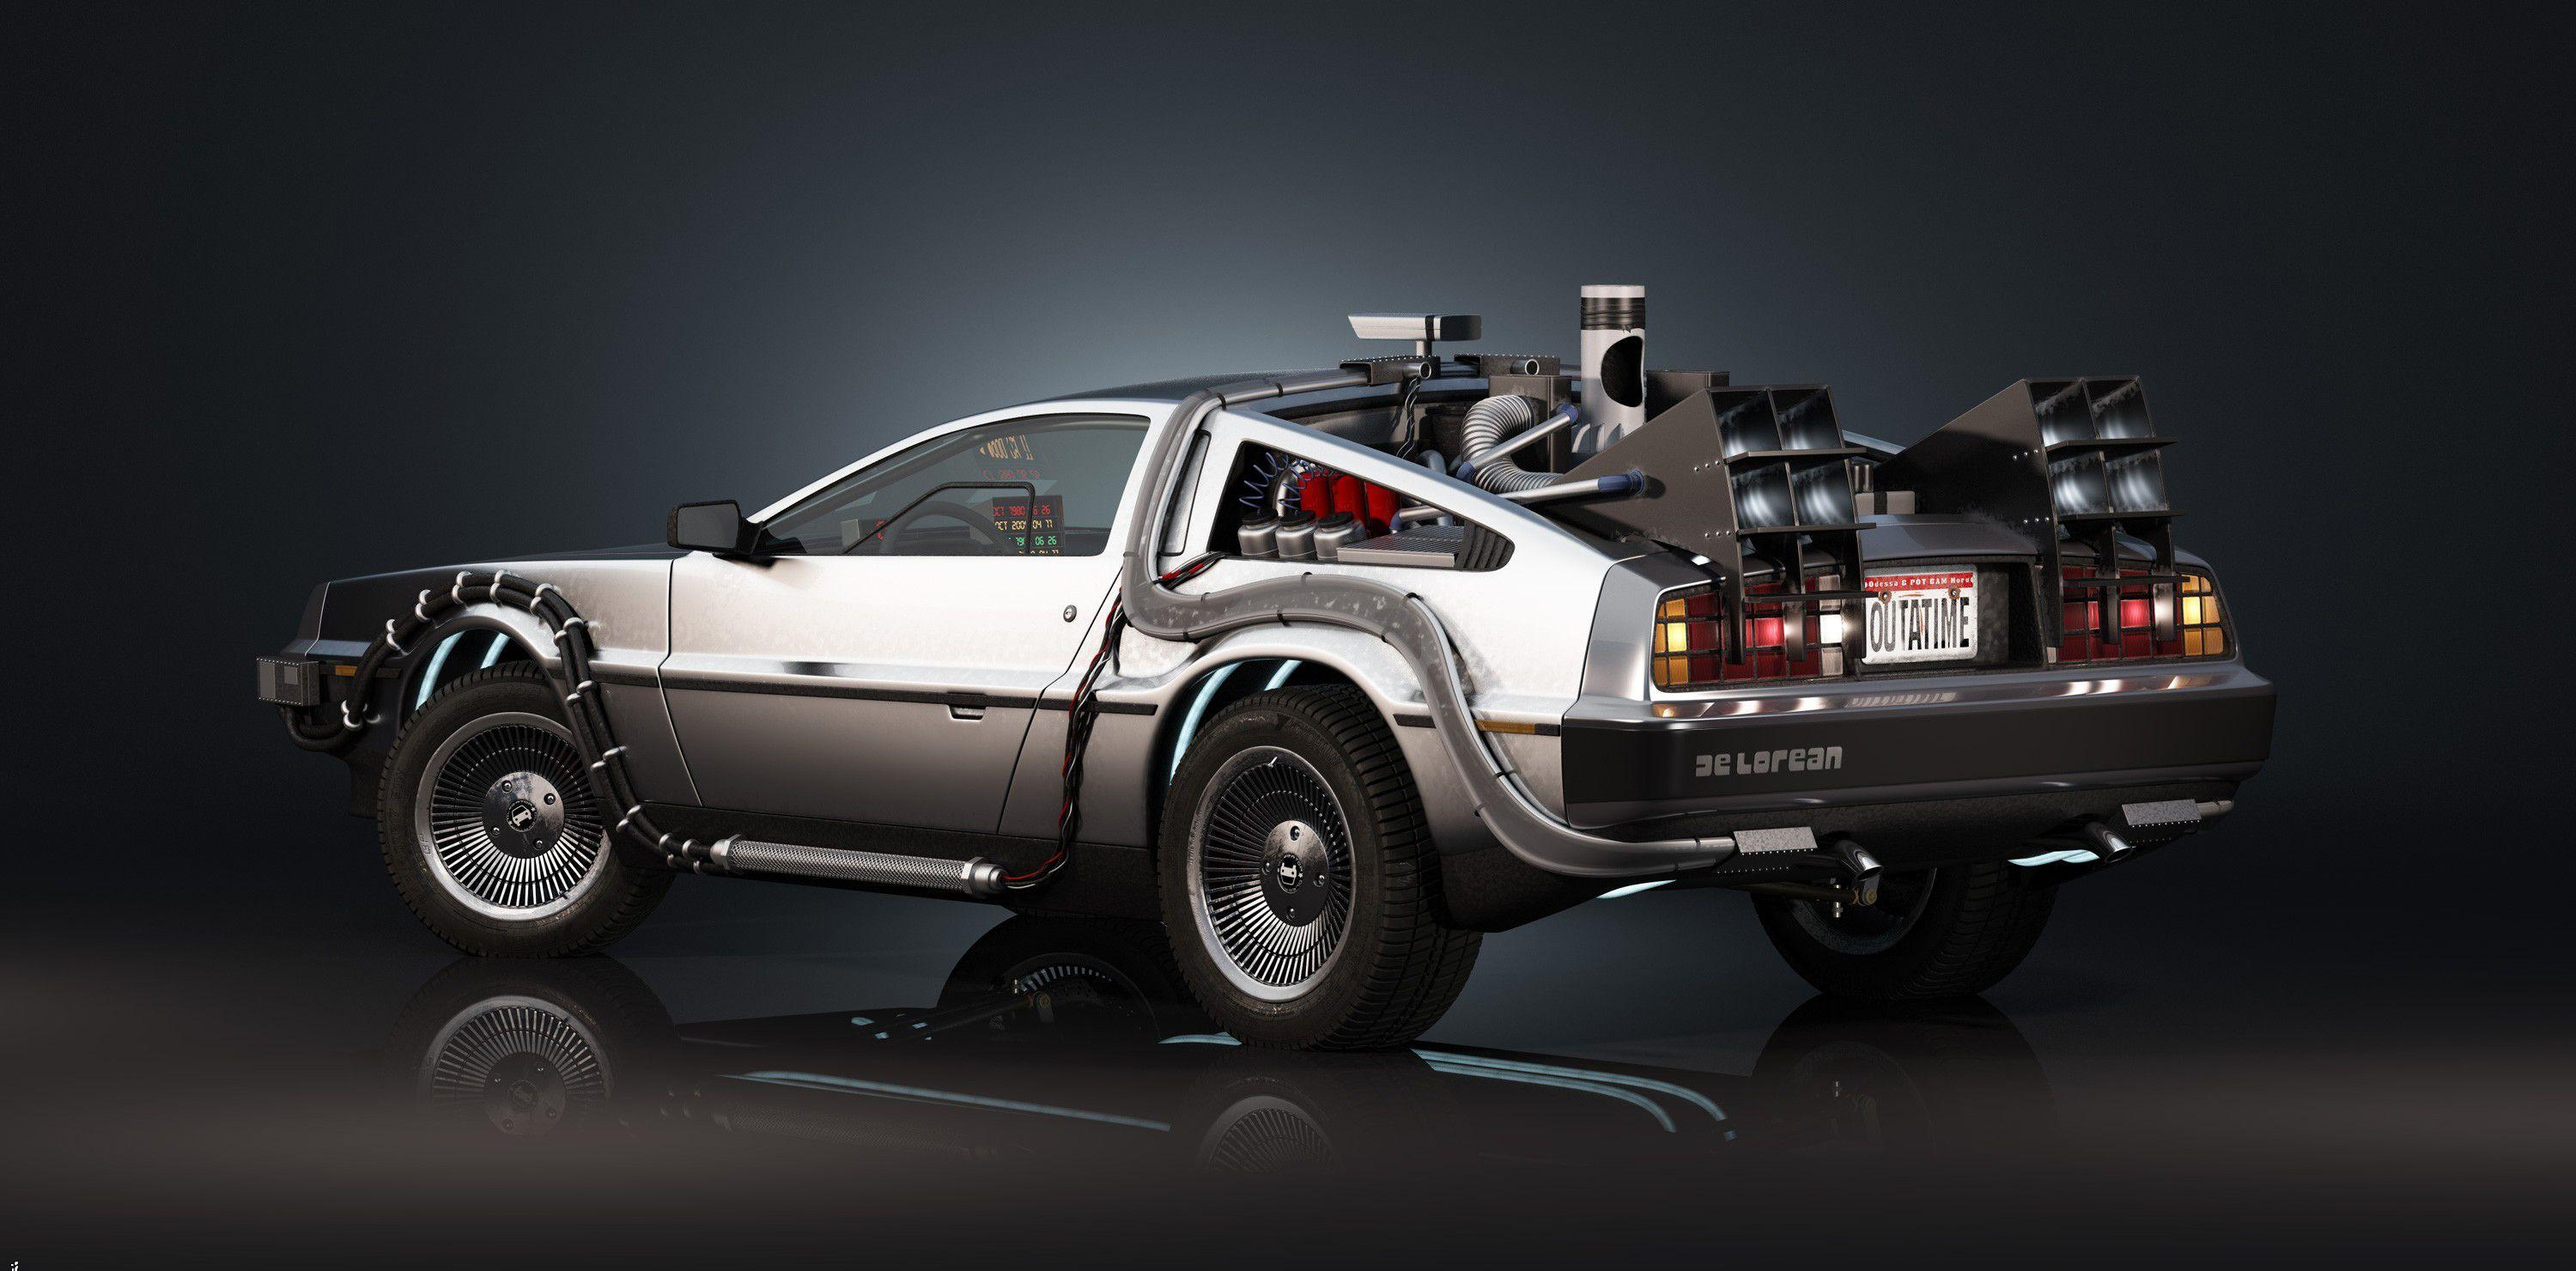 Delorean Back To The Future Wallpapers Wallpaper Cave